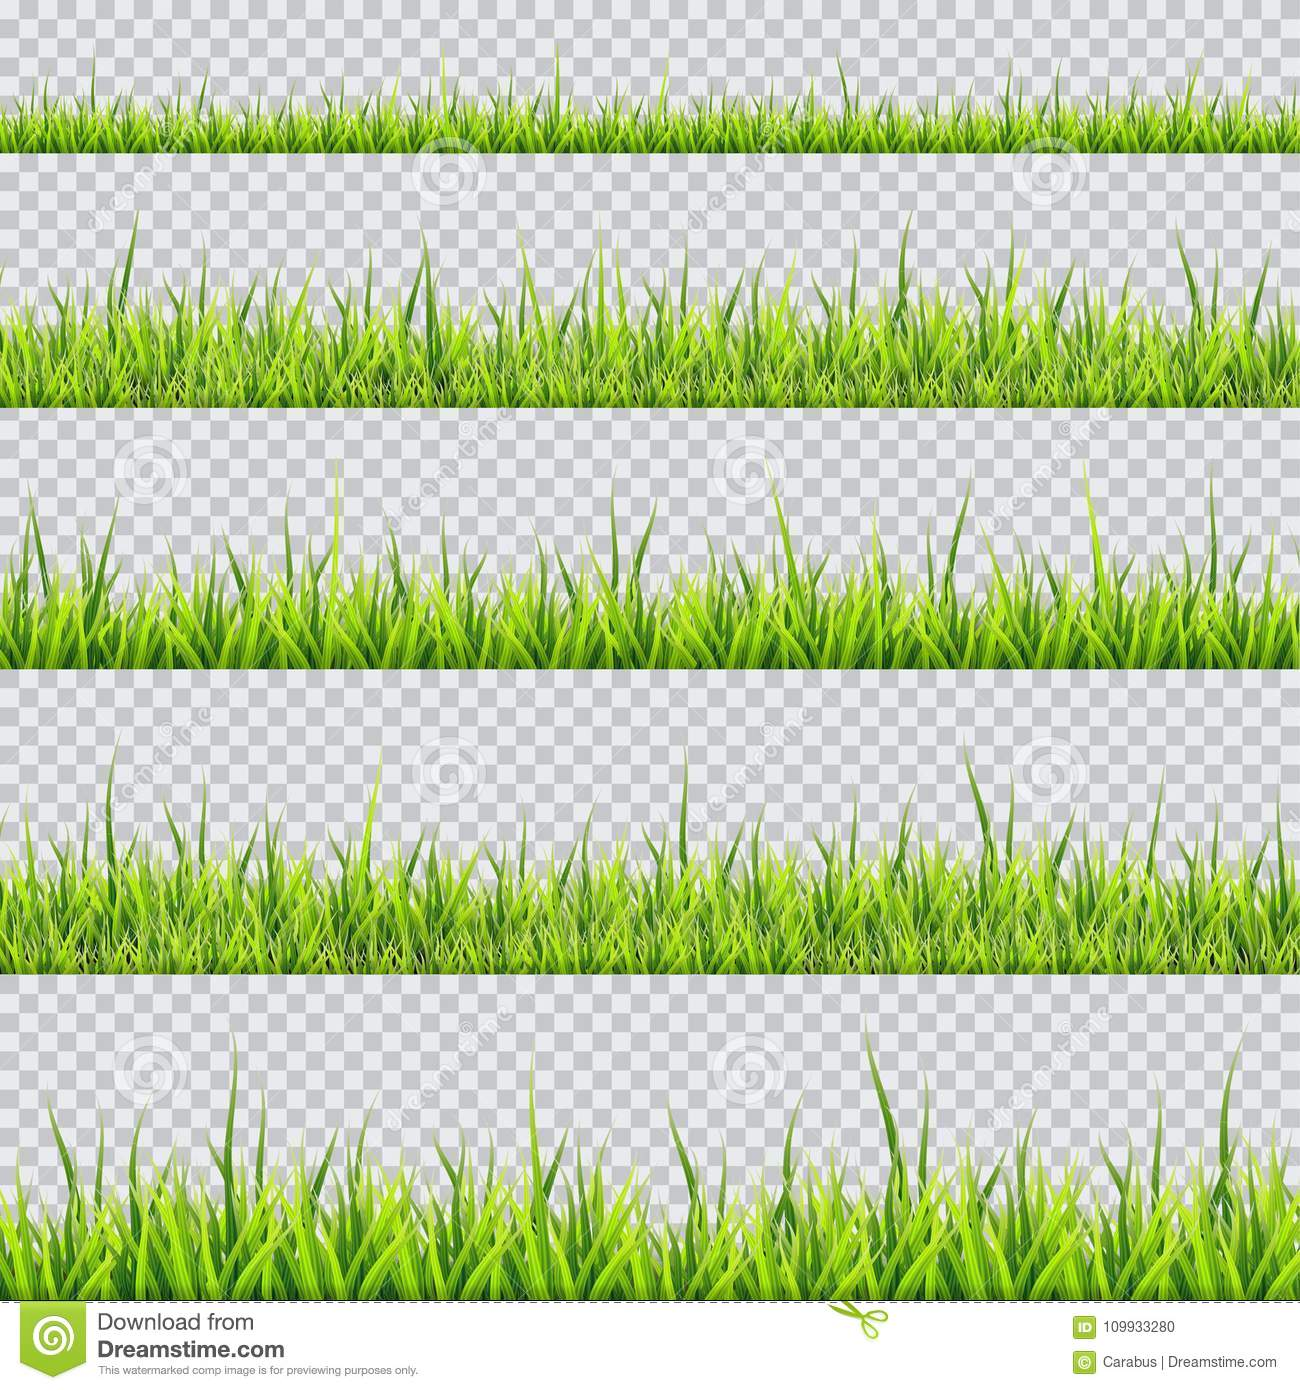 grass border no background cartoon grass border collection vector illustration on transparent background border collection illustration on transparent